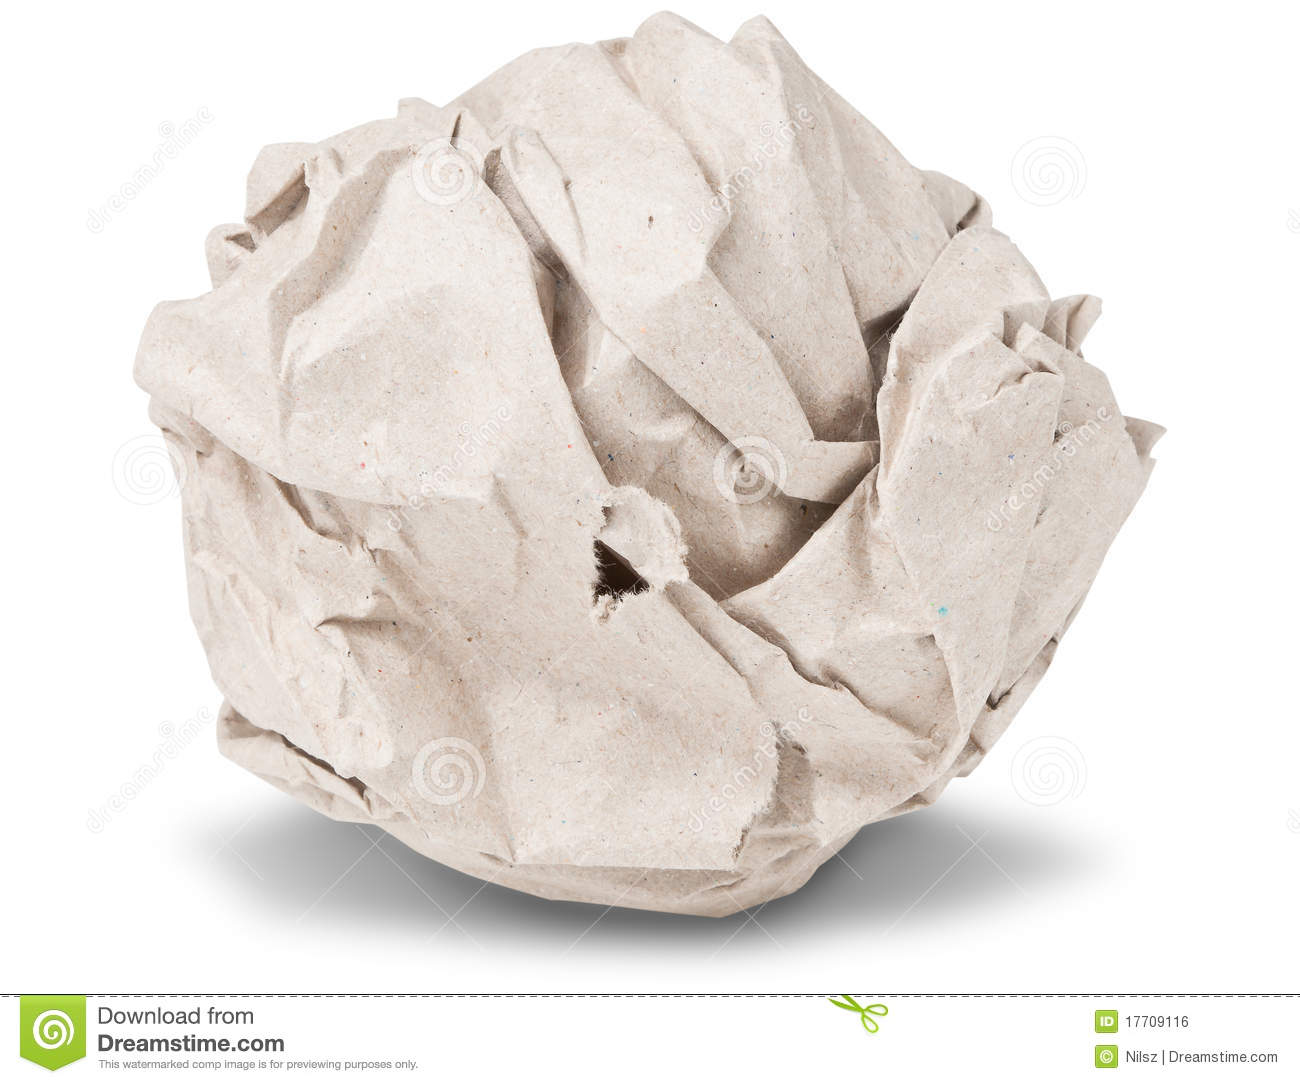 recycle crumpled paper ball stock photo - image of ball, page: 17709116